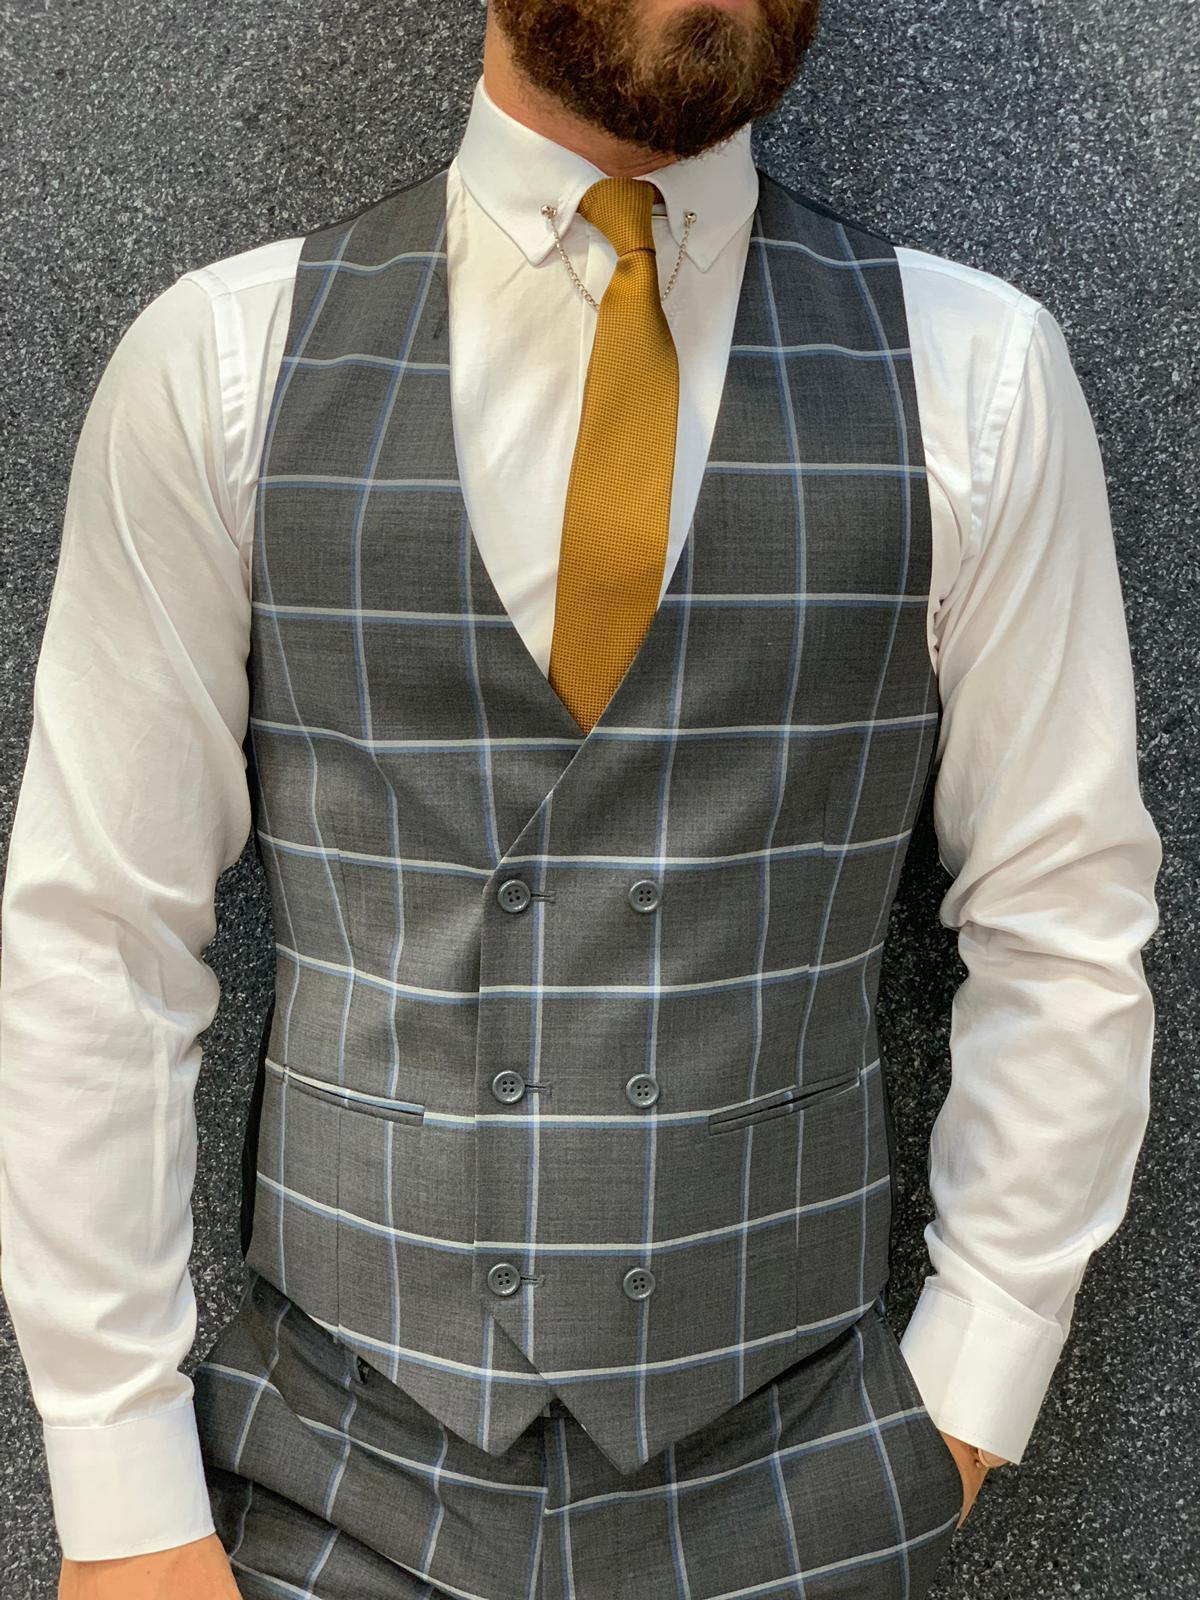 Ensemble de Costume Gris à Carreaux - ParezCostume